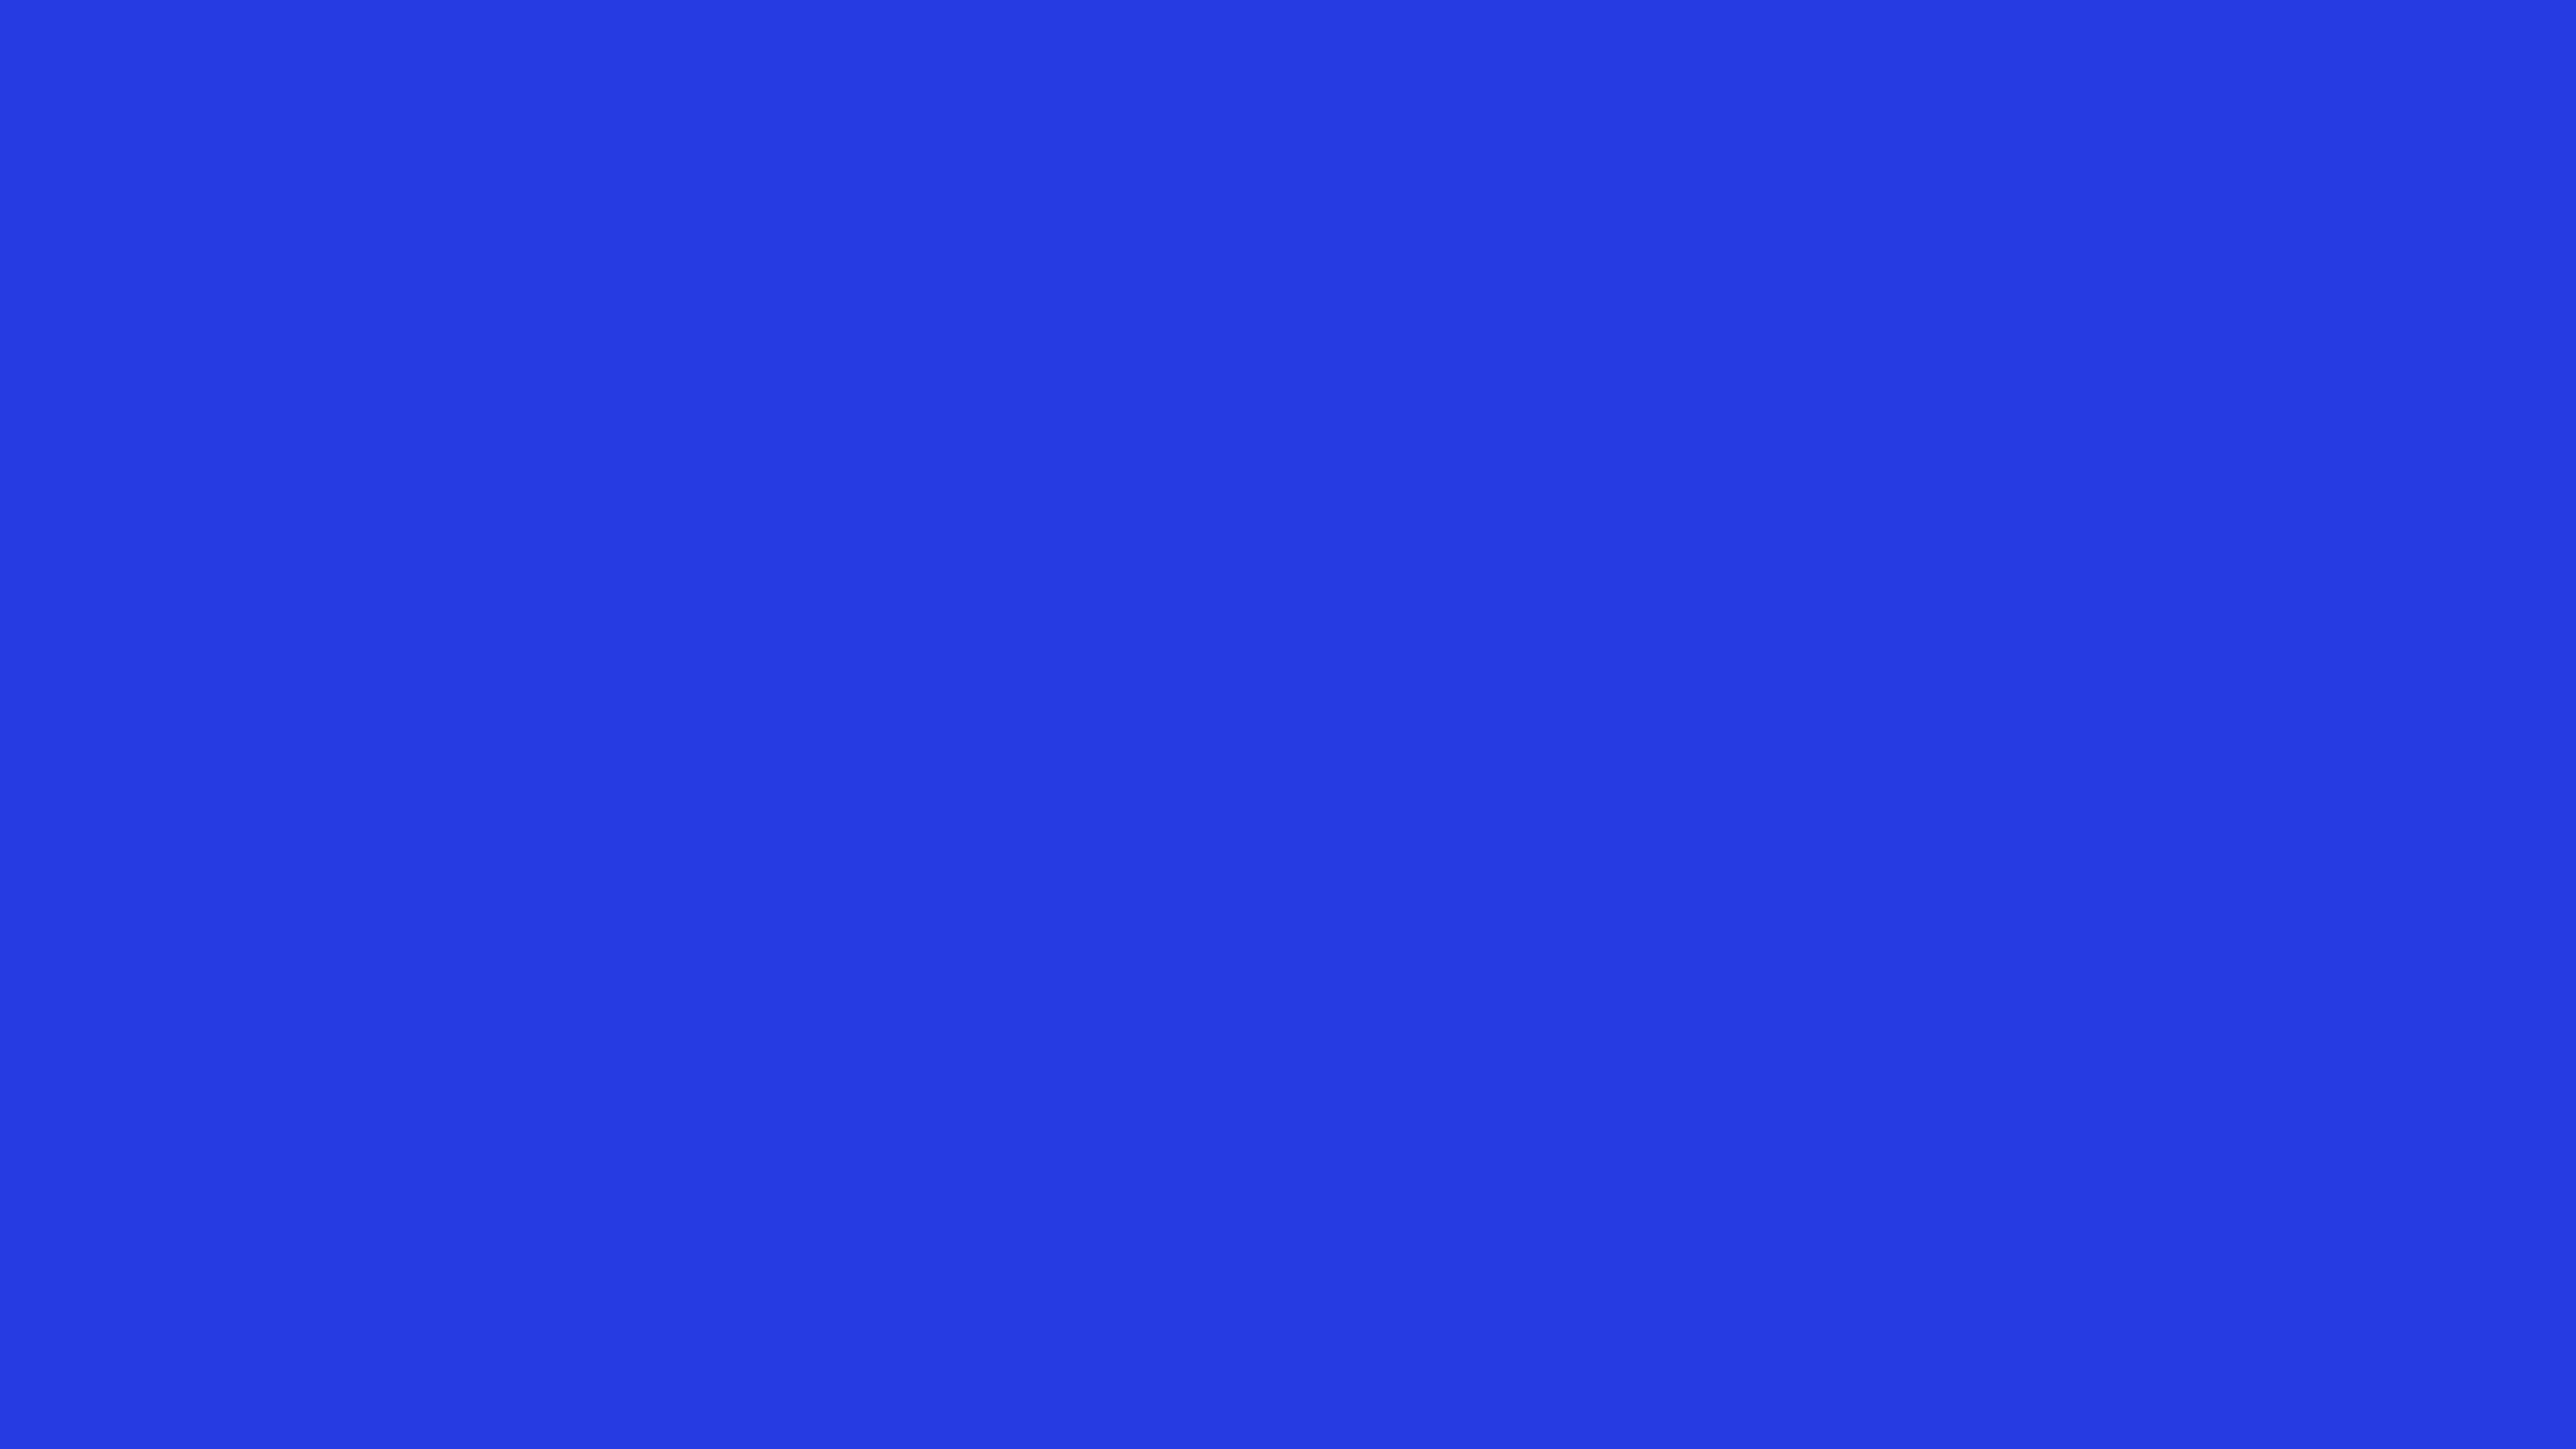 5120x2880 Palatinate Blue Solid Color Background